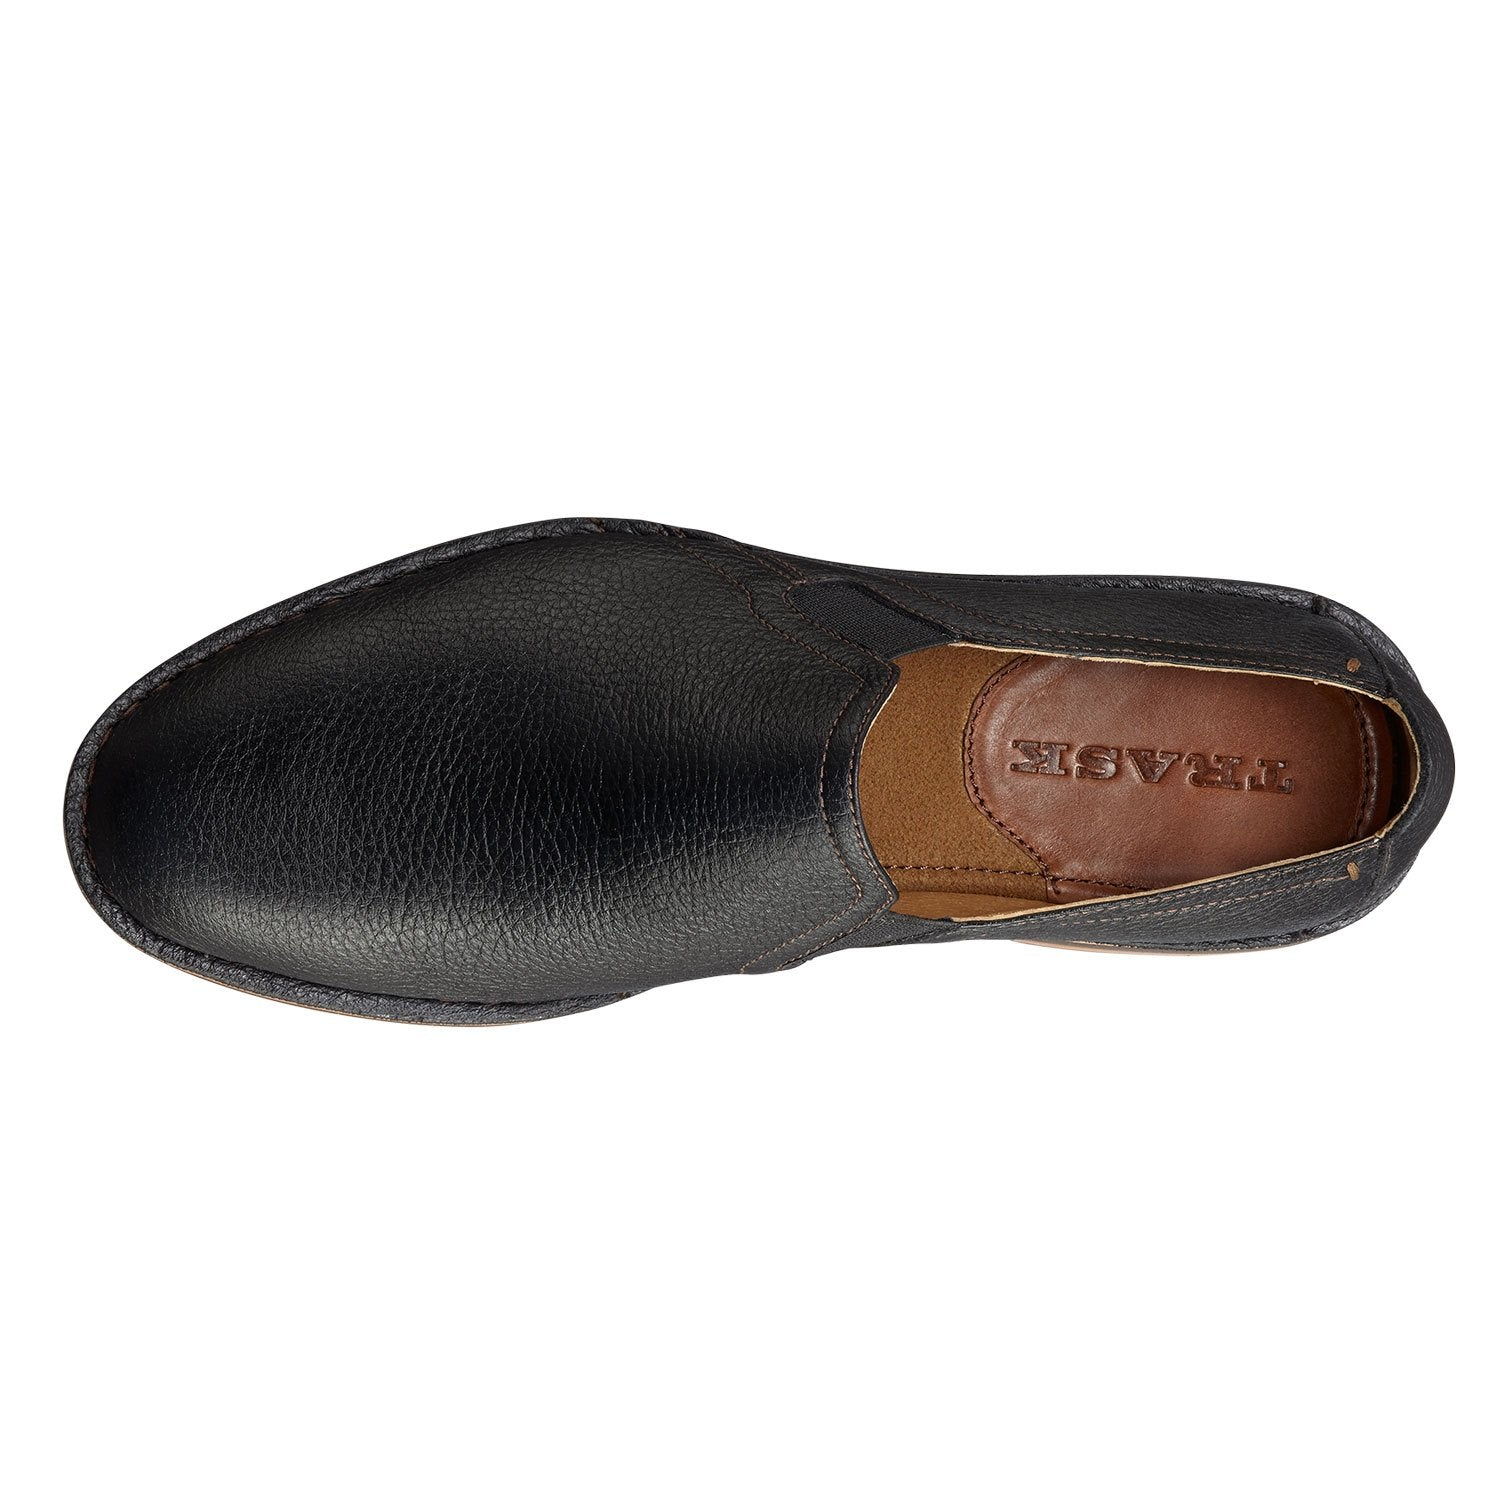 Blaine Slip On Loafer - Oak Hall